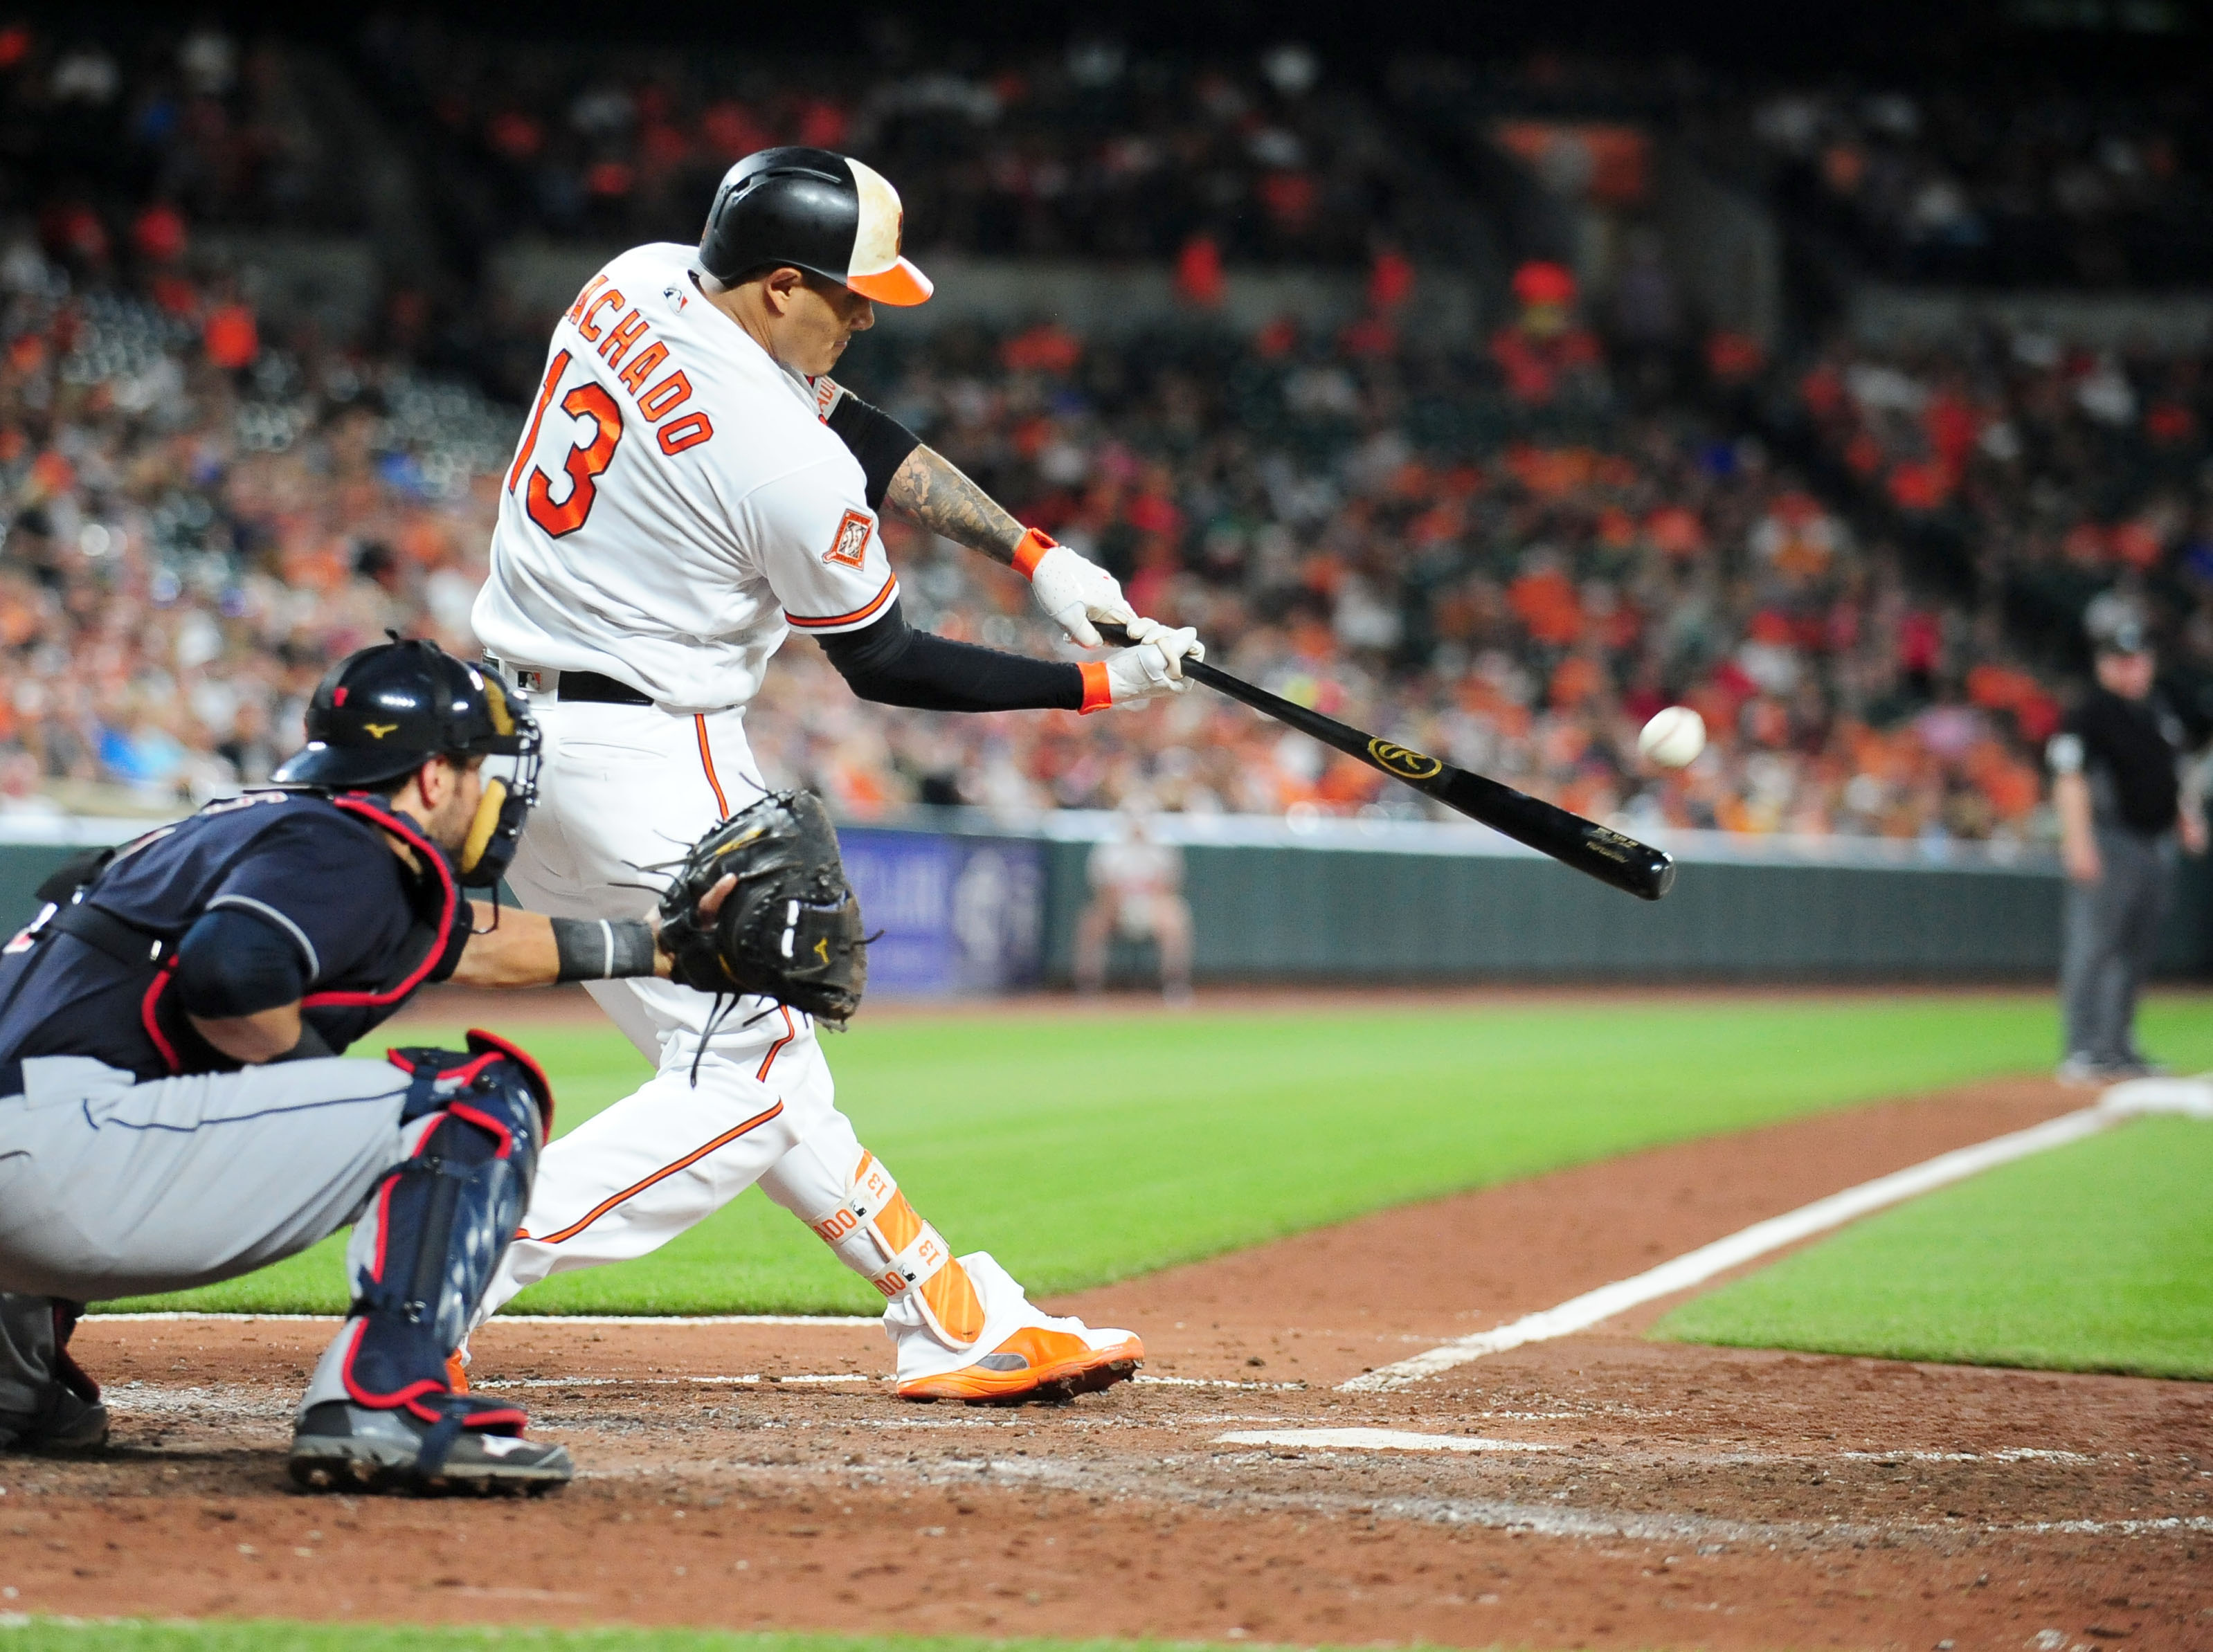 10123220-mlb-cleveland-indians-at-baltimore-orioles